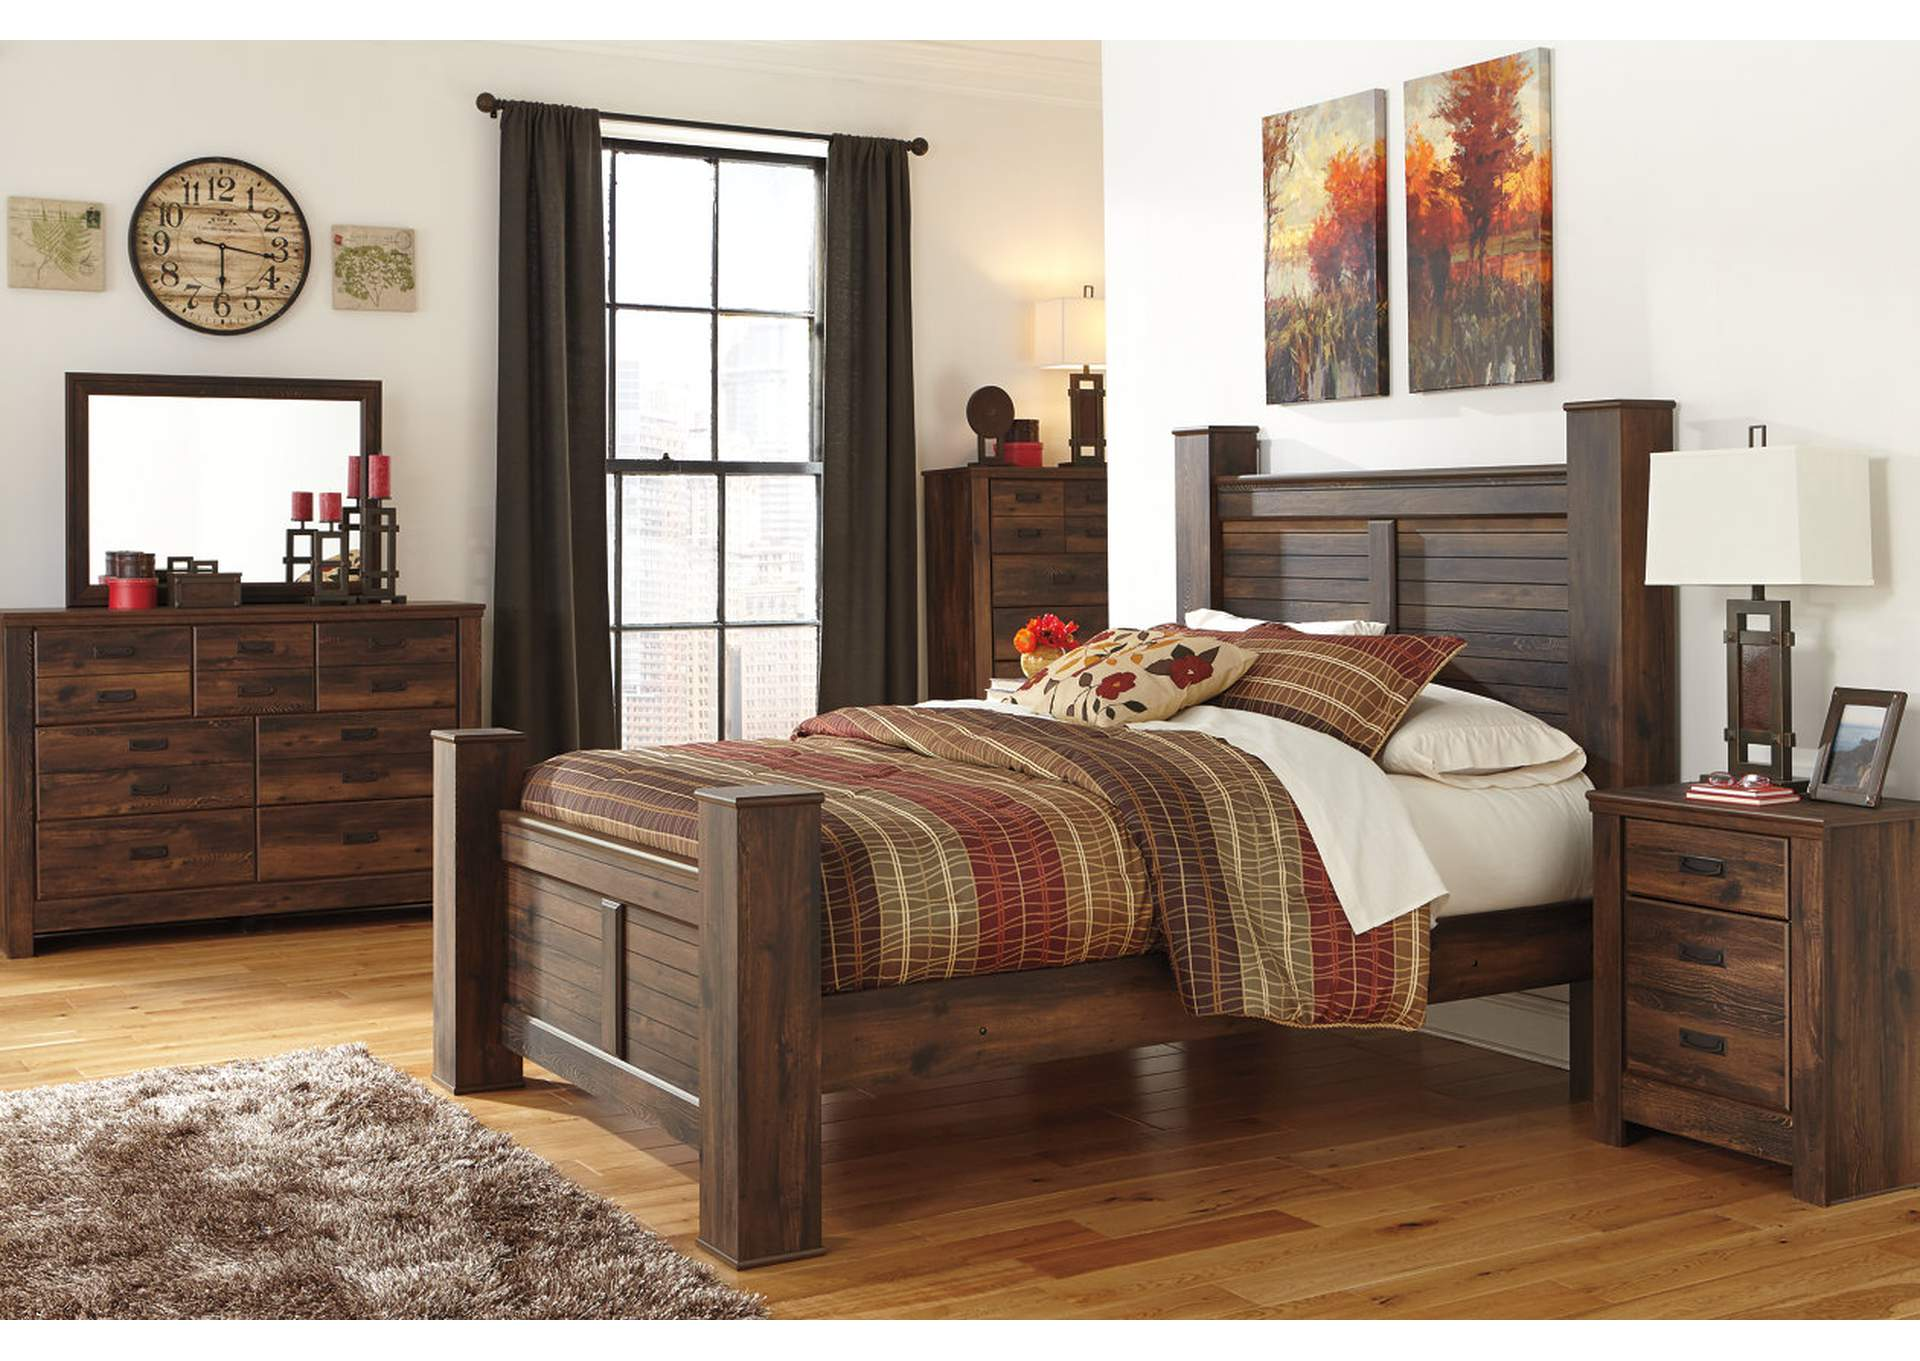 Quinden Queen Poster Bed w/Dresser, Mirror, Drawer Chest & Nightstand,Signature Design By Ashley